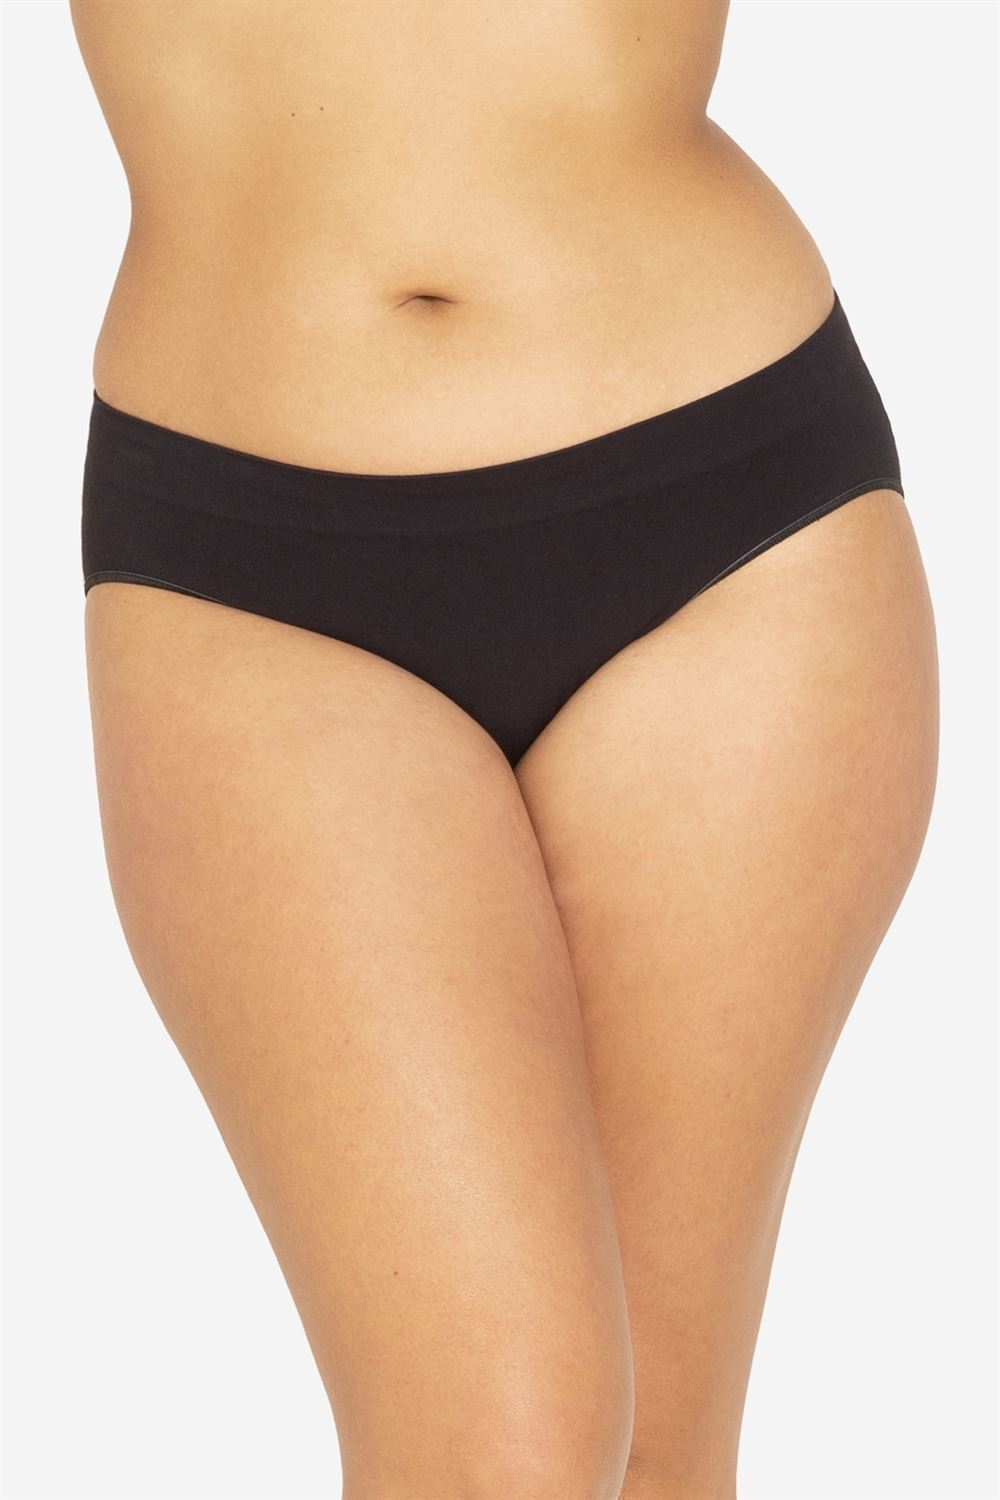 Black maternity panties in soft Organic bamboo fibres - Plus size